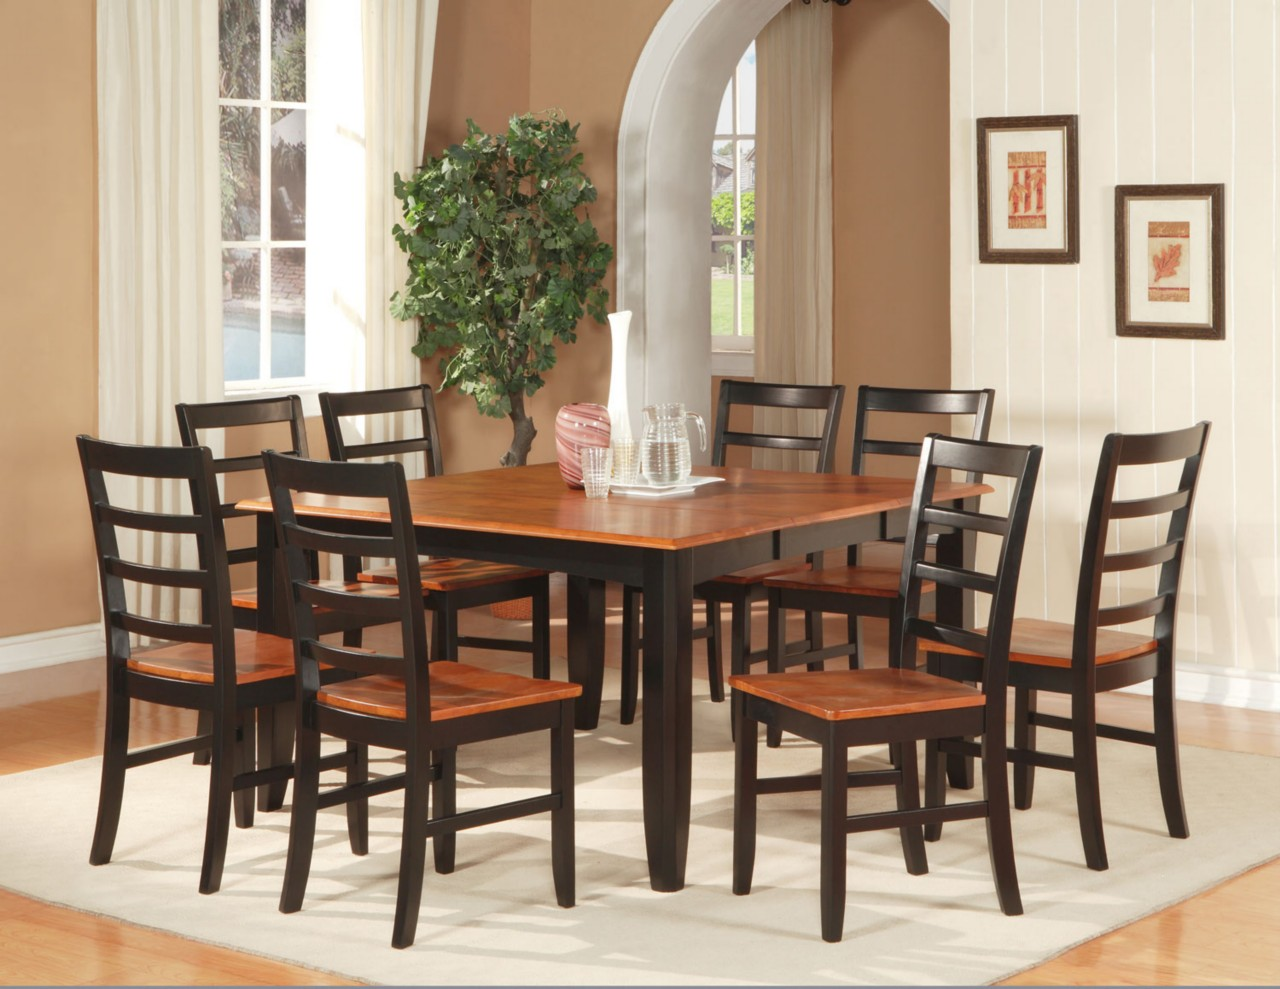 square dining table for 6 photo - 3